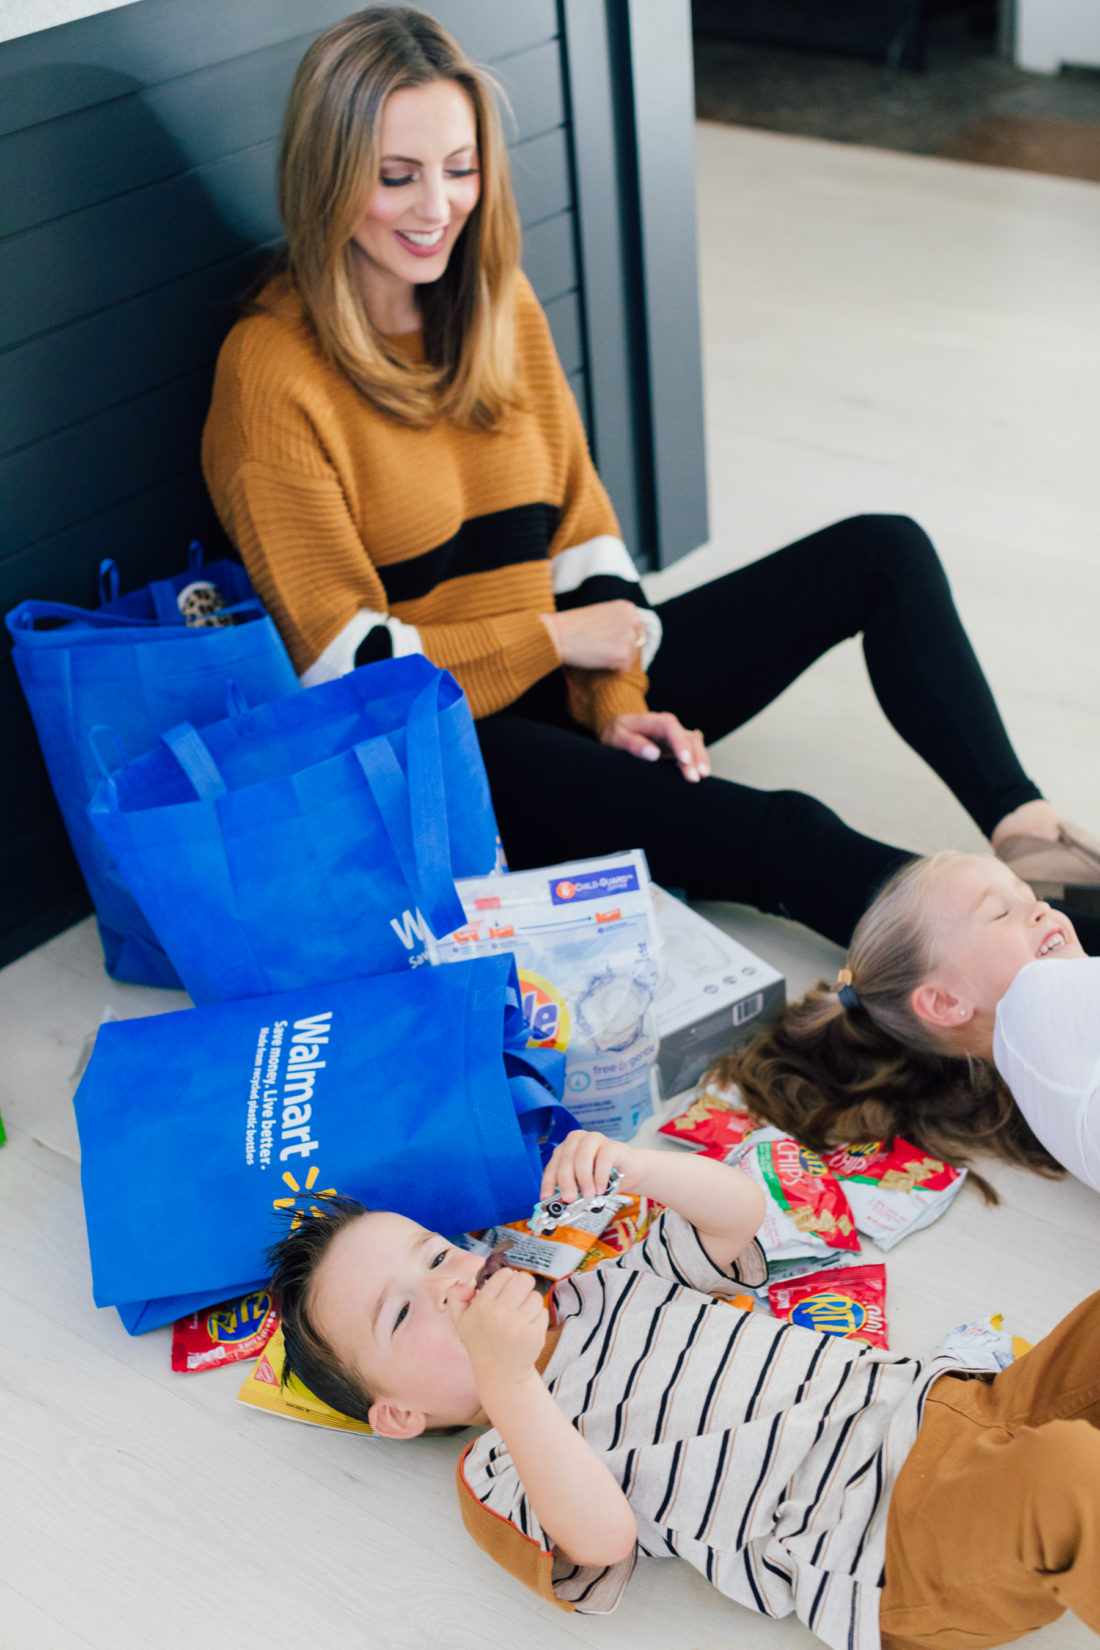 Eva Amurri Martino does a Walmart haul unpacking